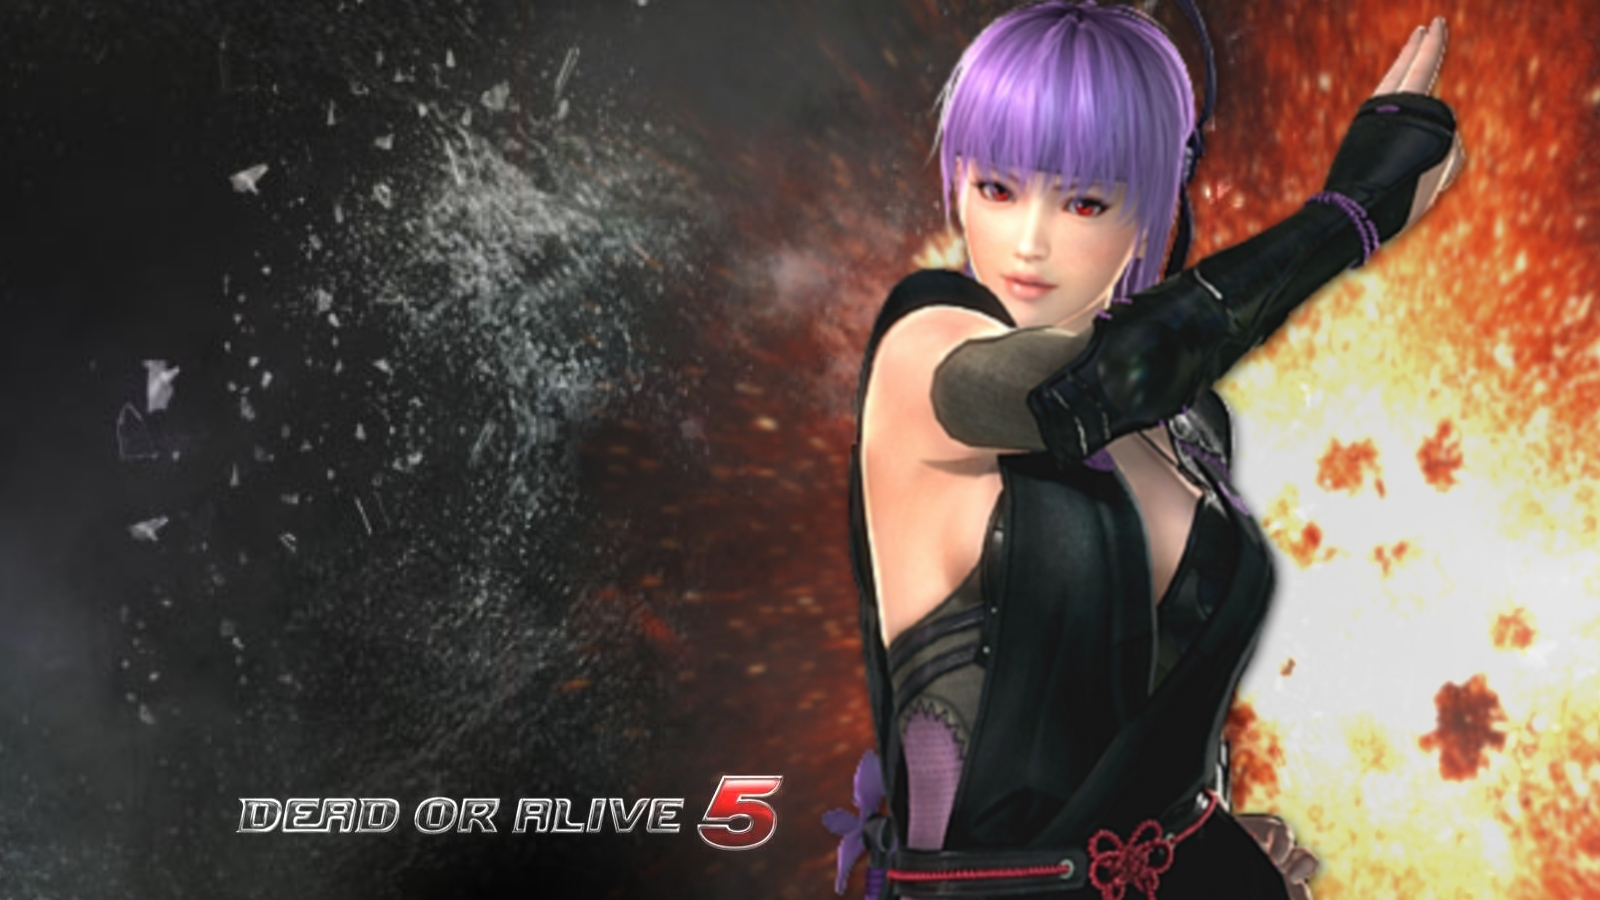 Helpful Dead or alive kasumi and ayane not absolutely